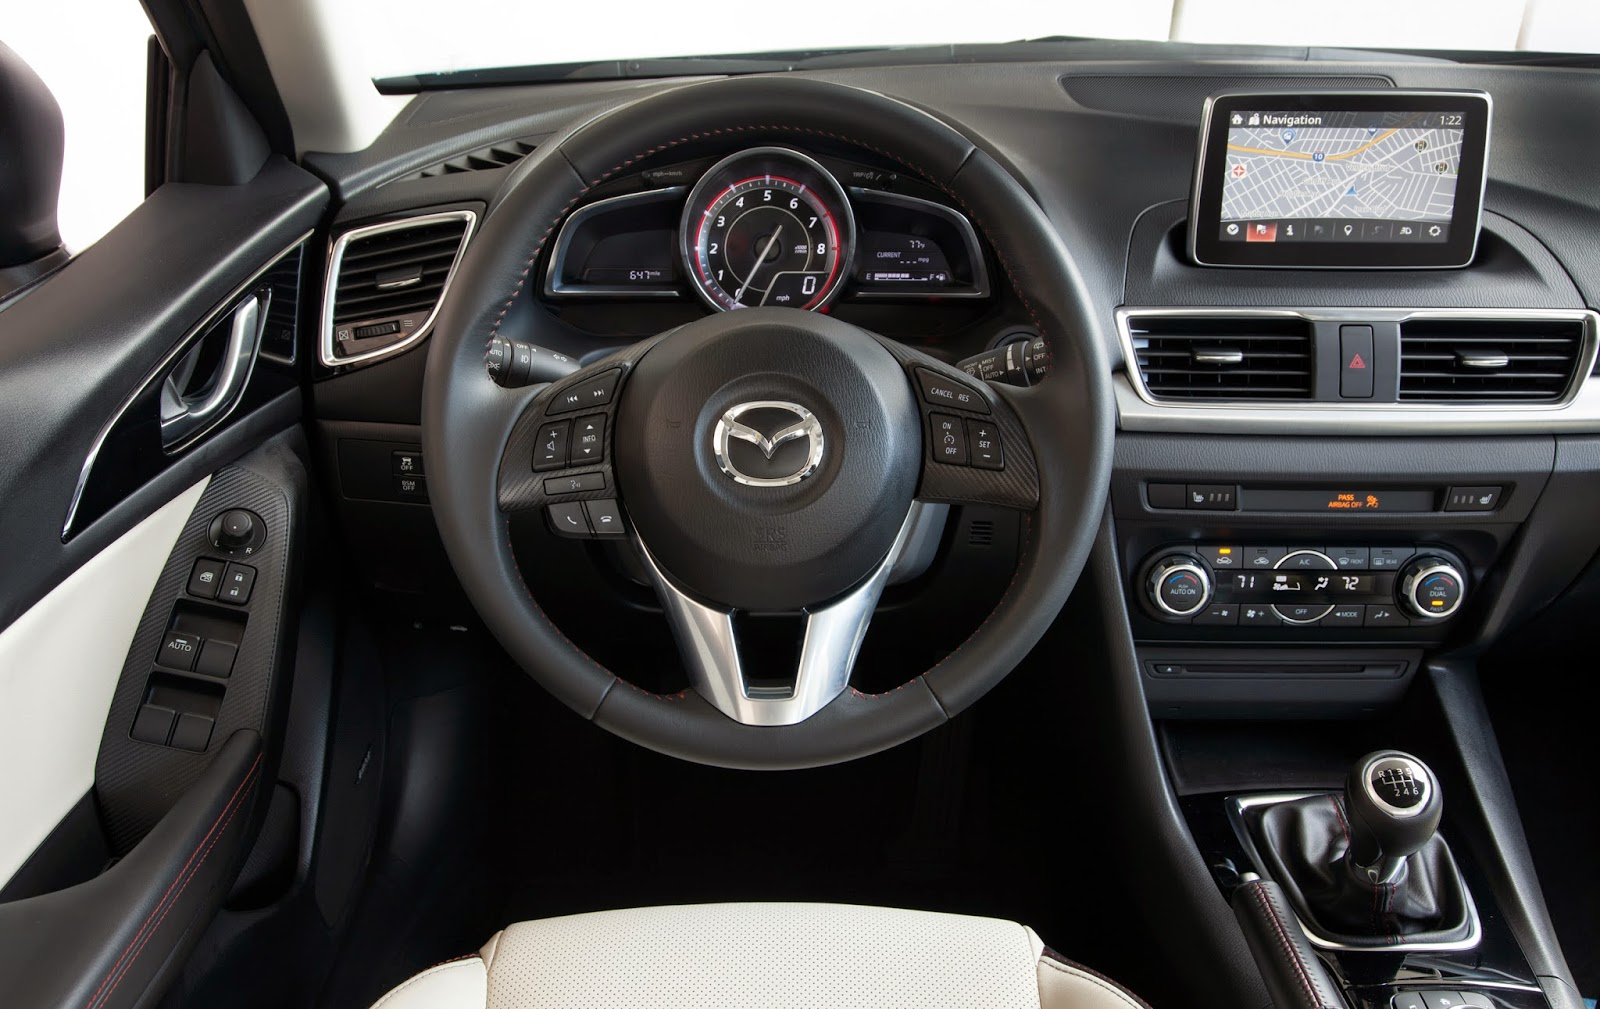 Interior view of 2015 Mazda 3 5-door Grand Touring.